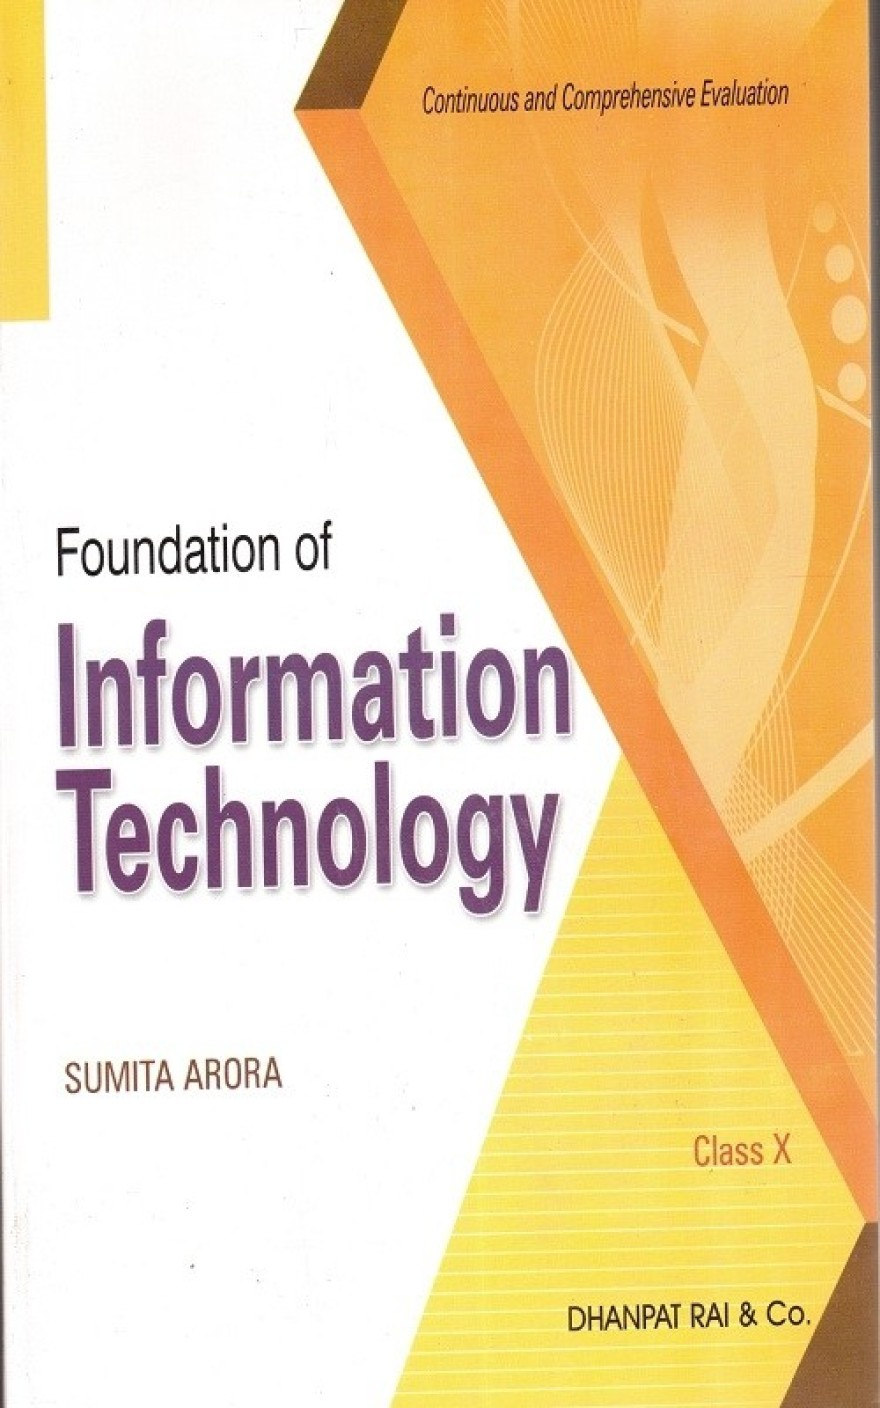 NCERT Books on Computers for Class 11 & 12